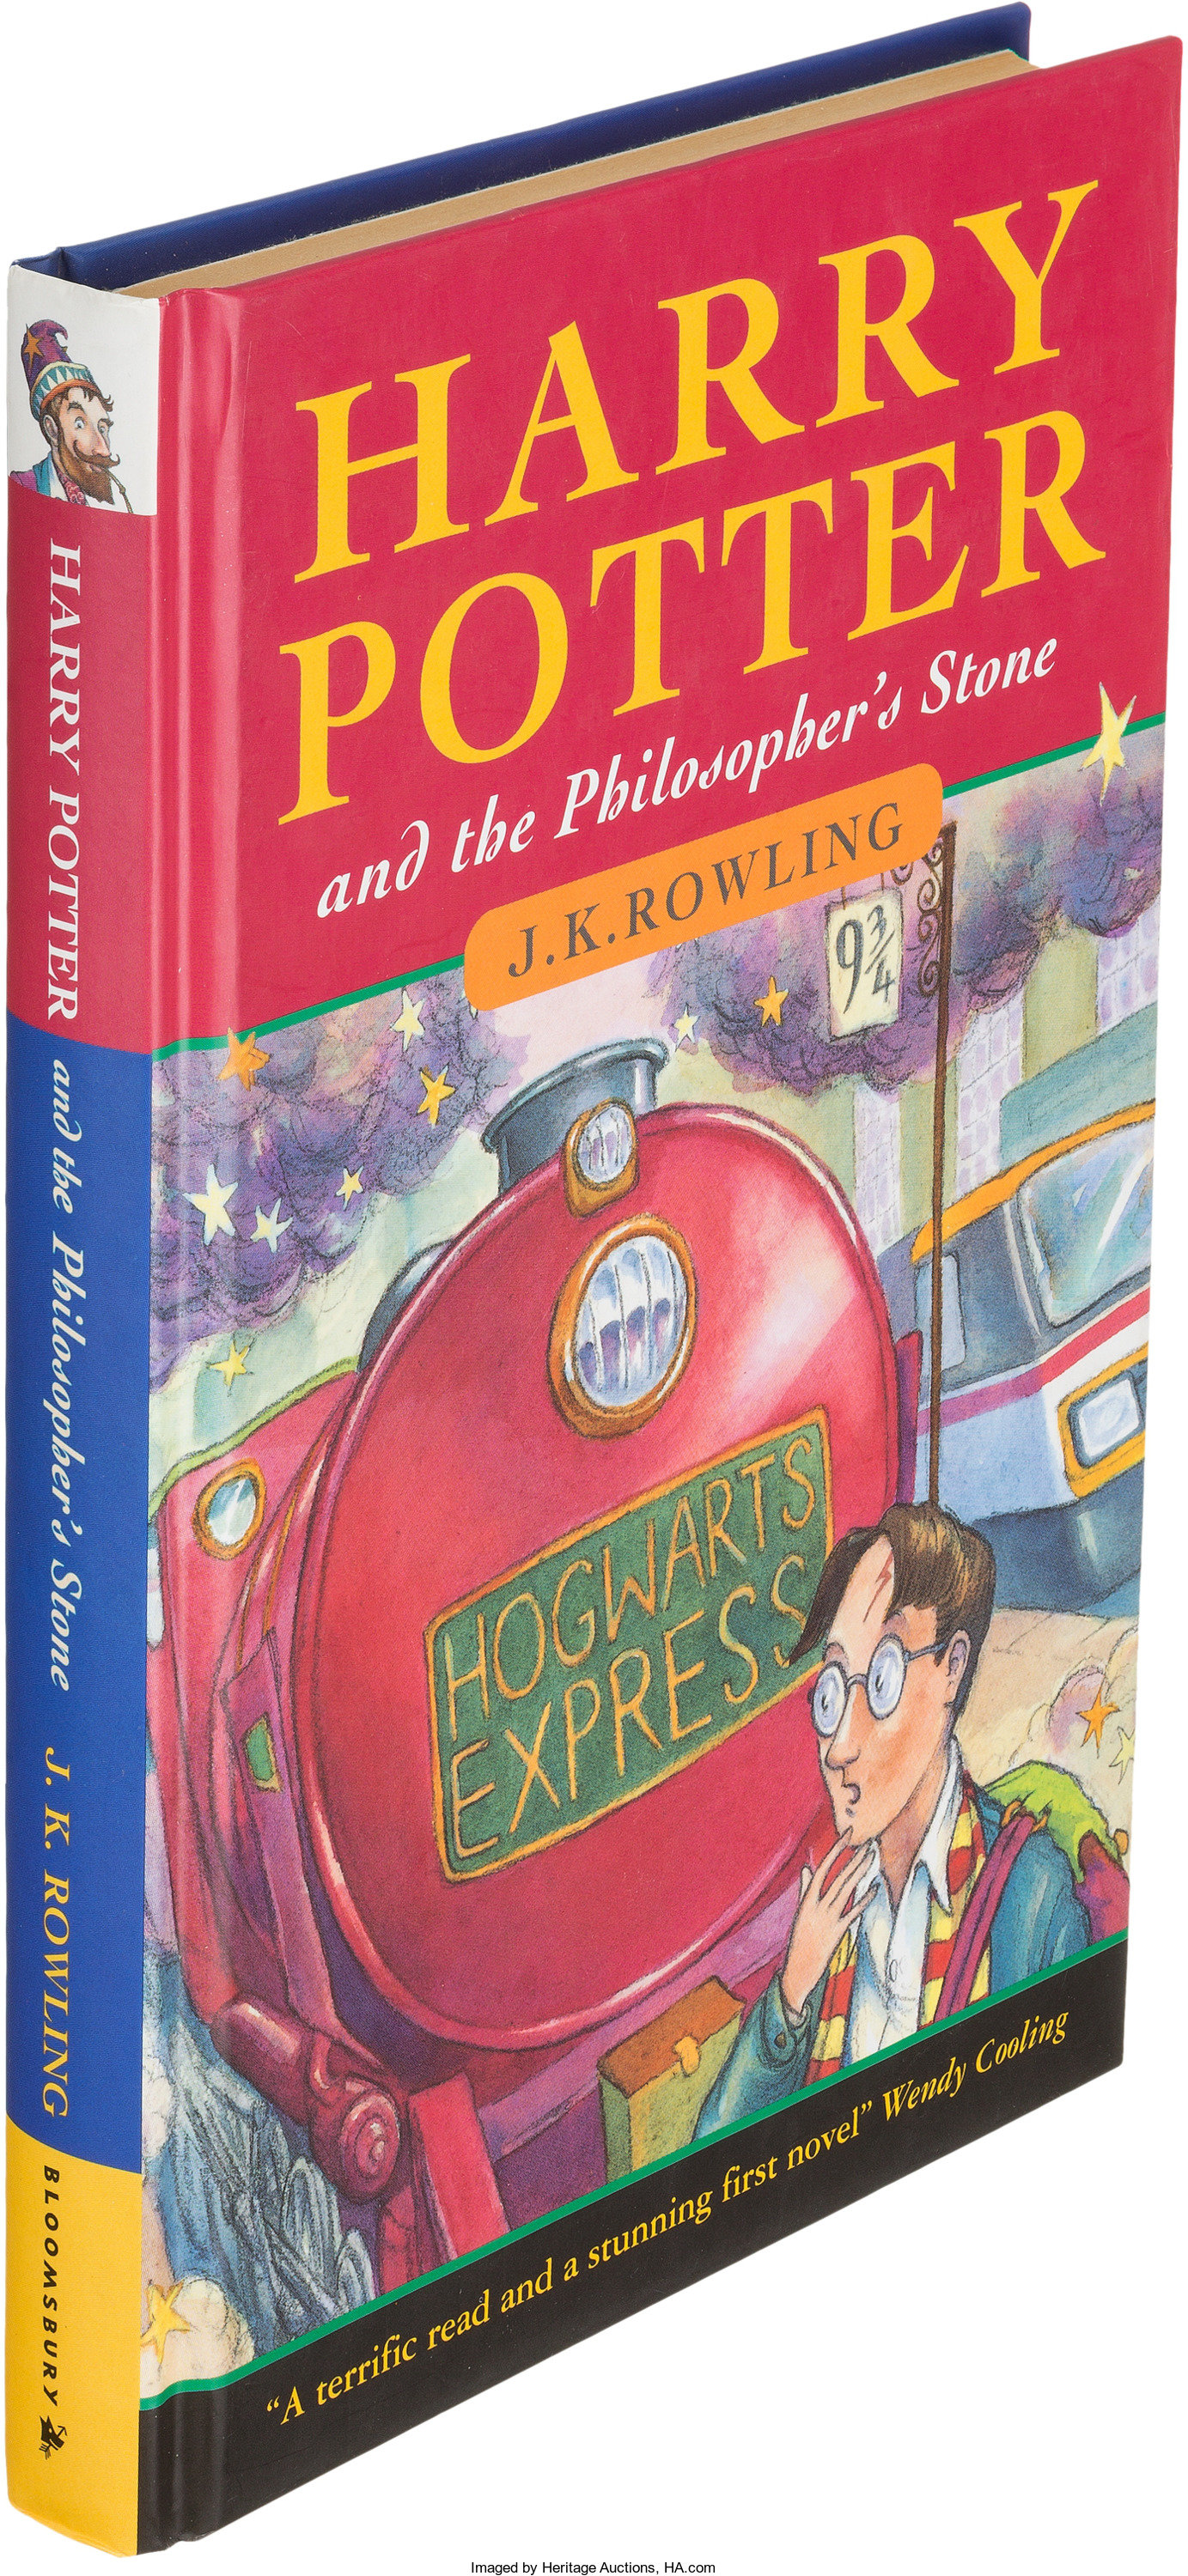 A British first edition of Harry Potter and the Philosopher's Stone, published in 1997.